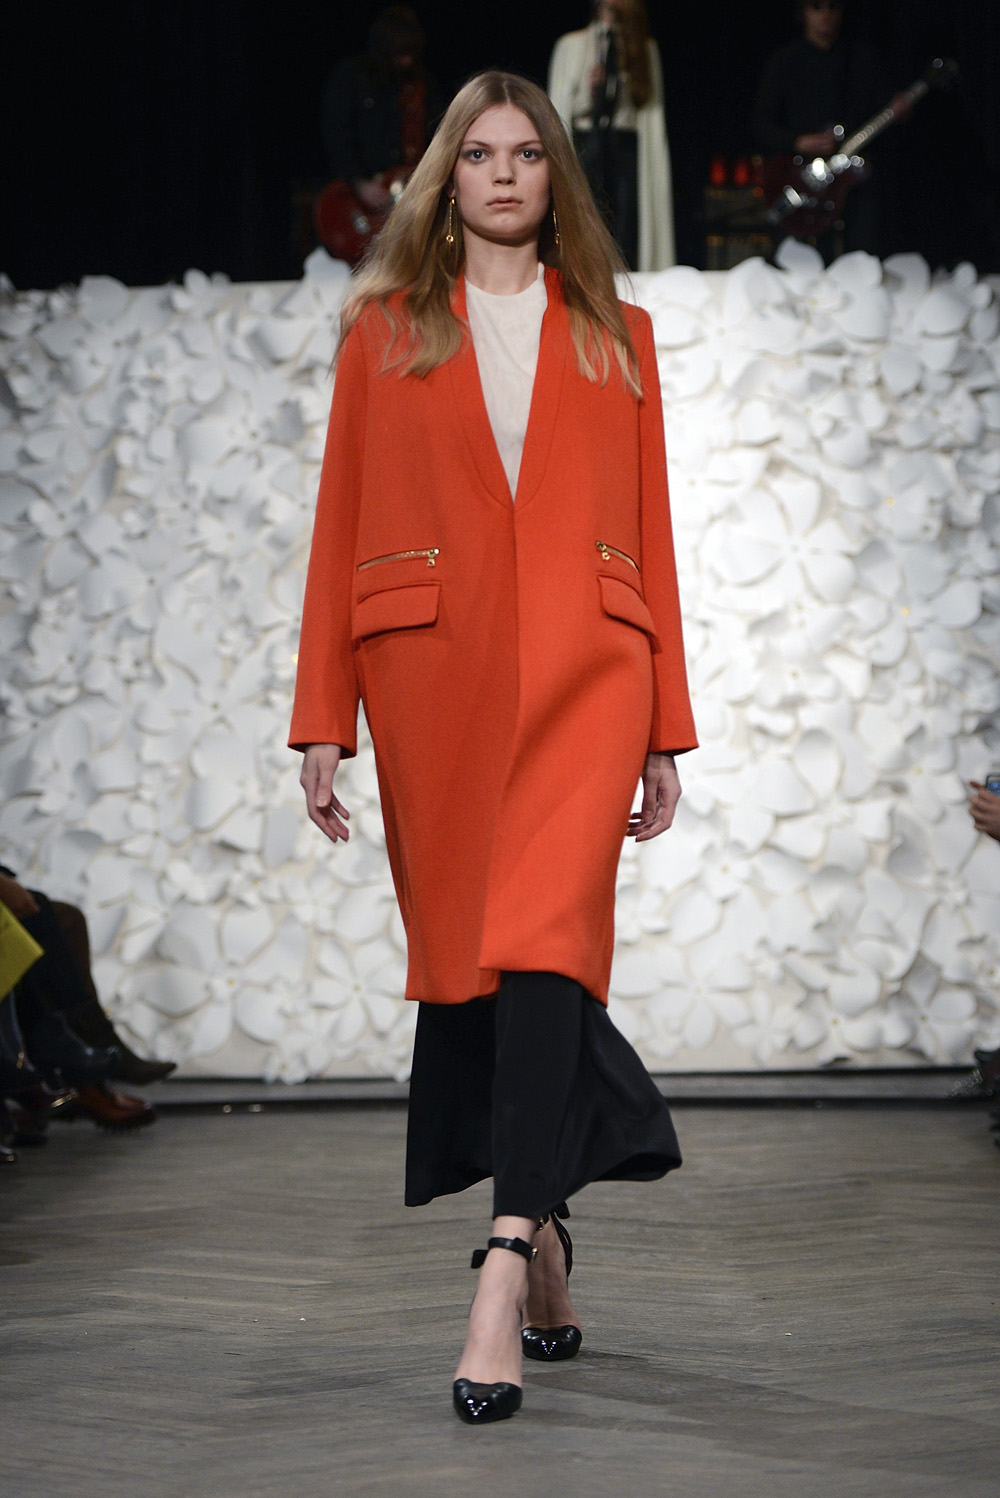 Kaviar Gauche Show - Mercedes-Benz Fashion Week Autumn/Winter 2014/15